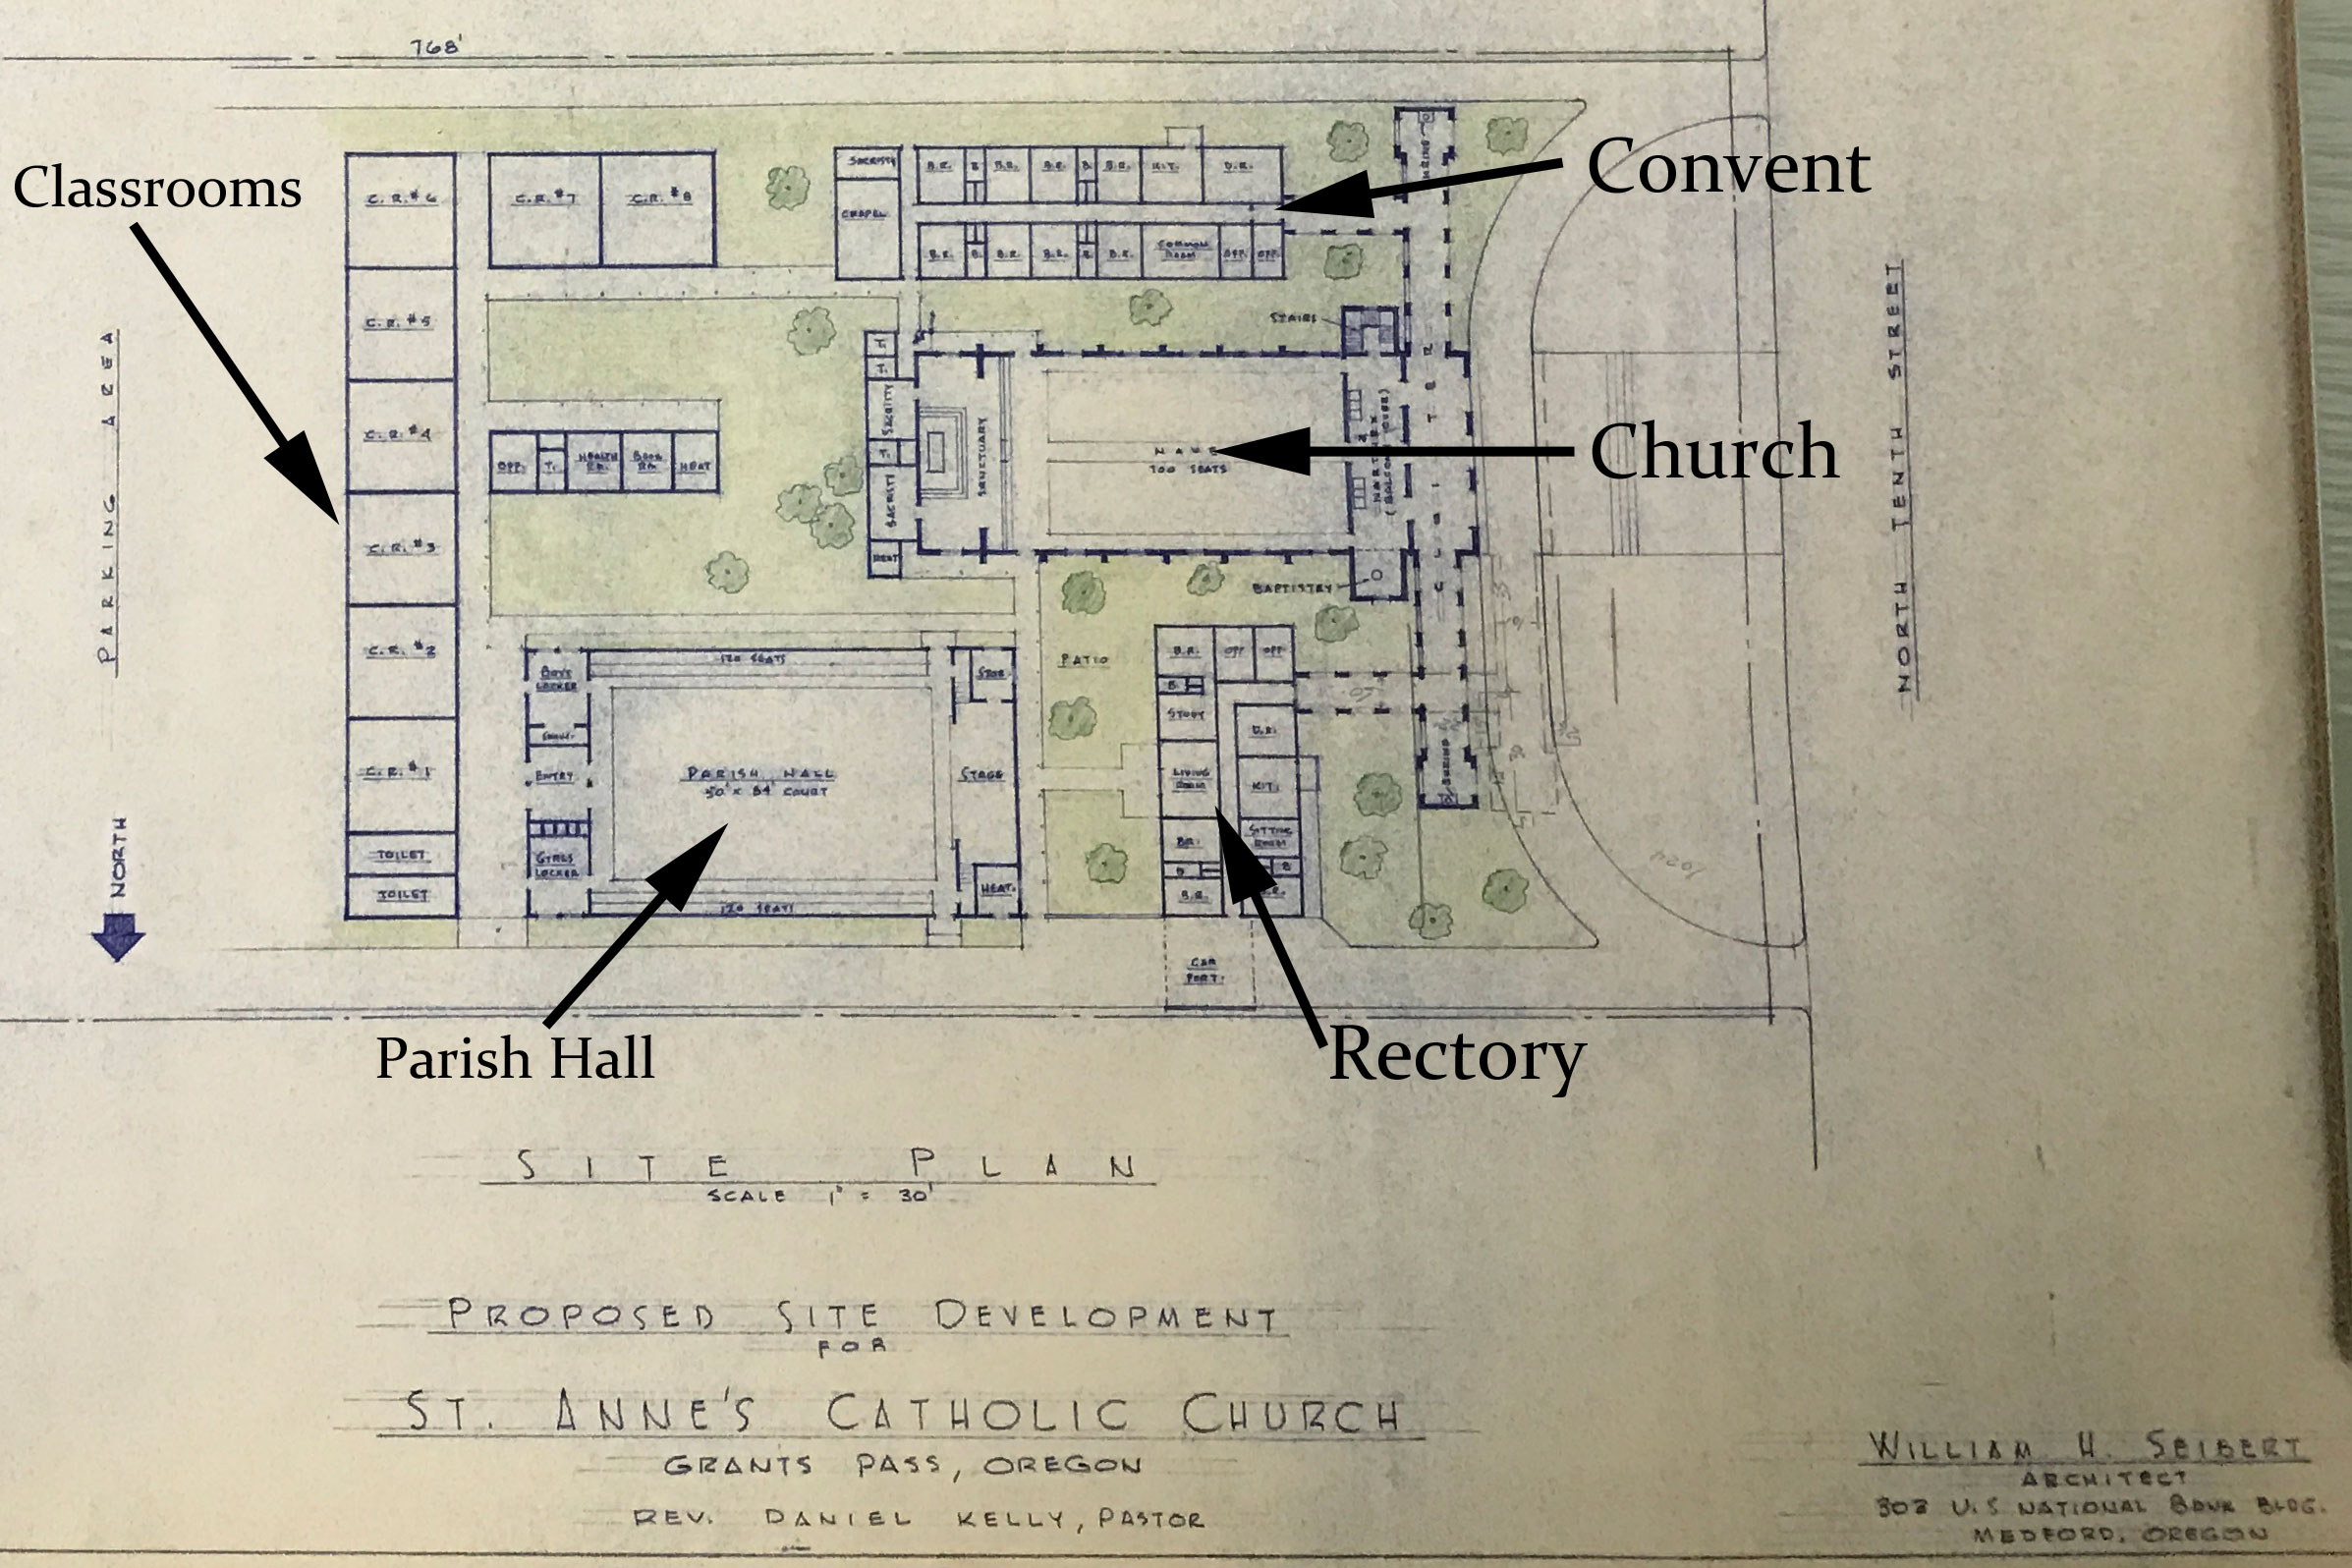 Master Plan renderings of conceptual new church, July 31, 1956